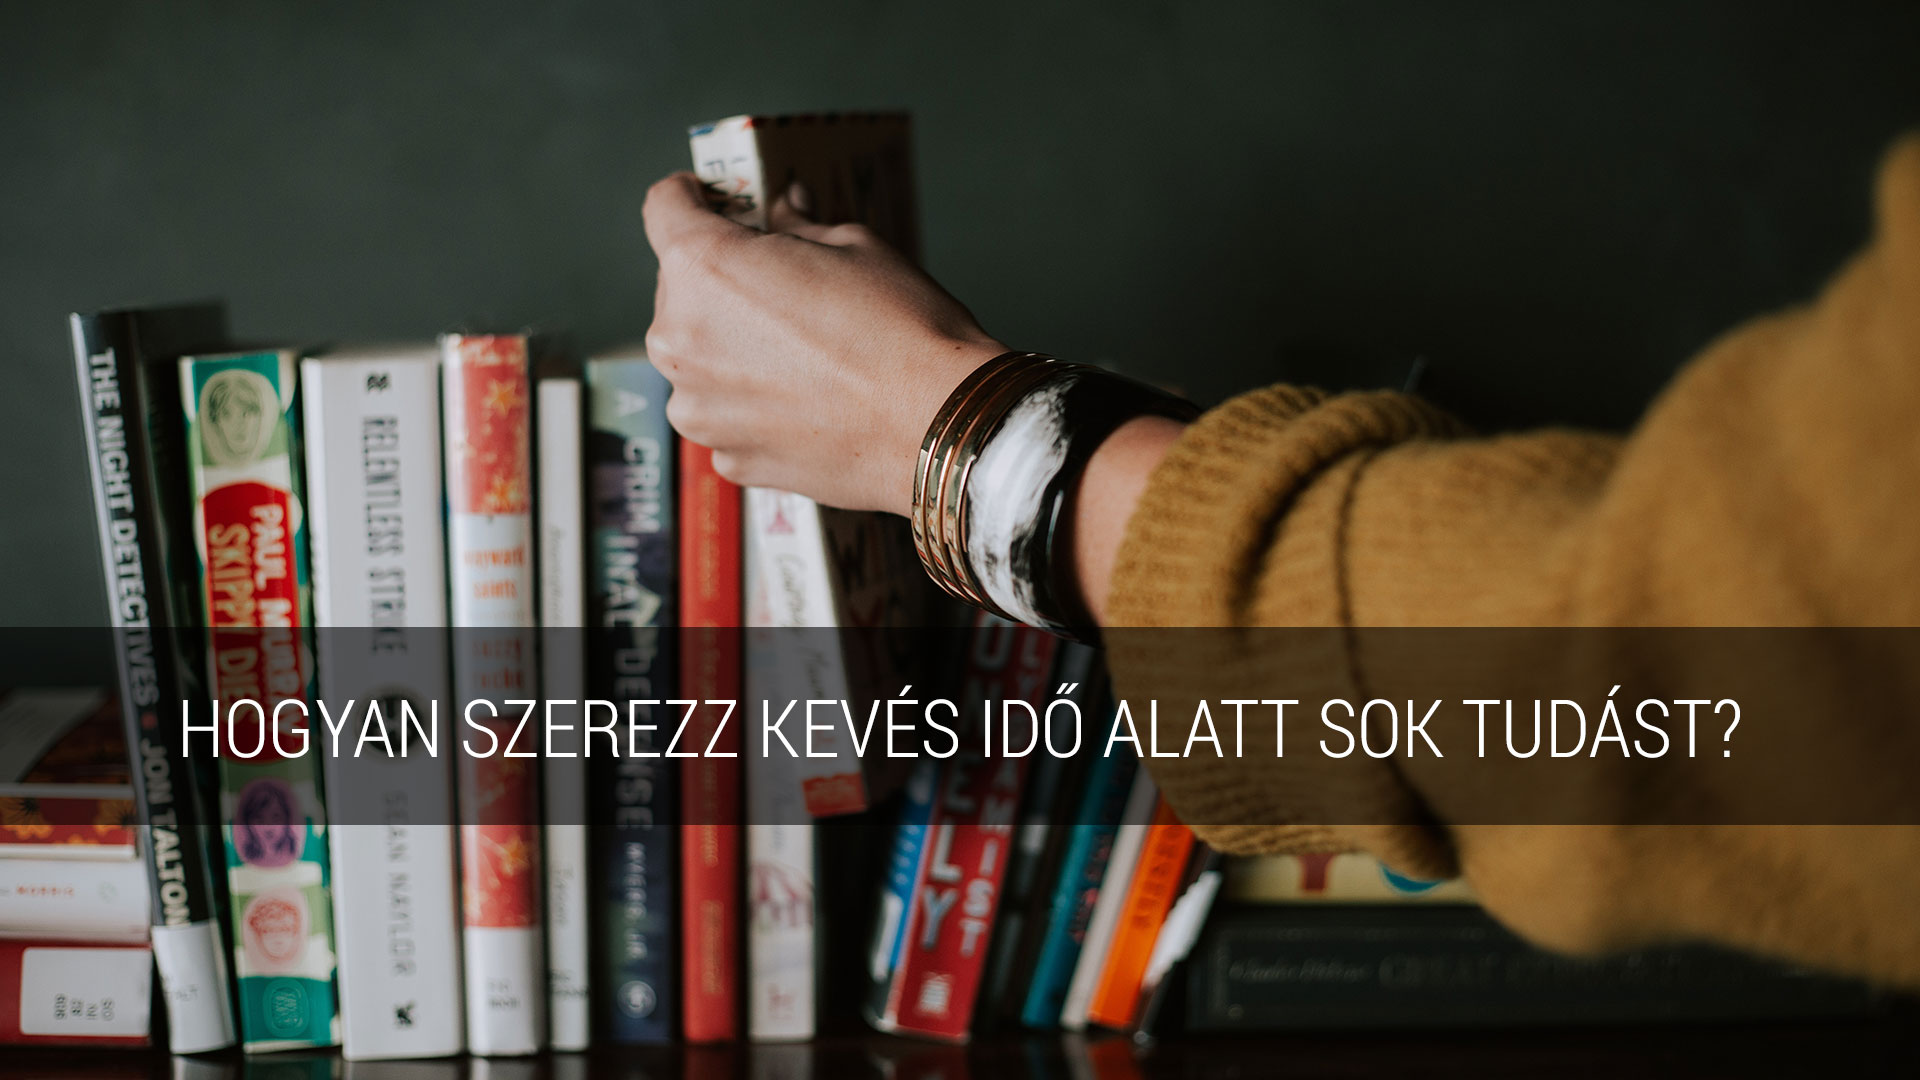 Sok tudást kevés idő alatt